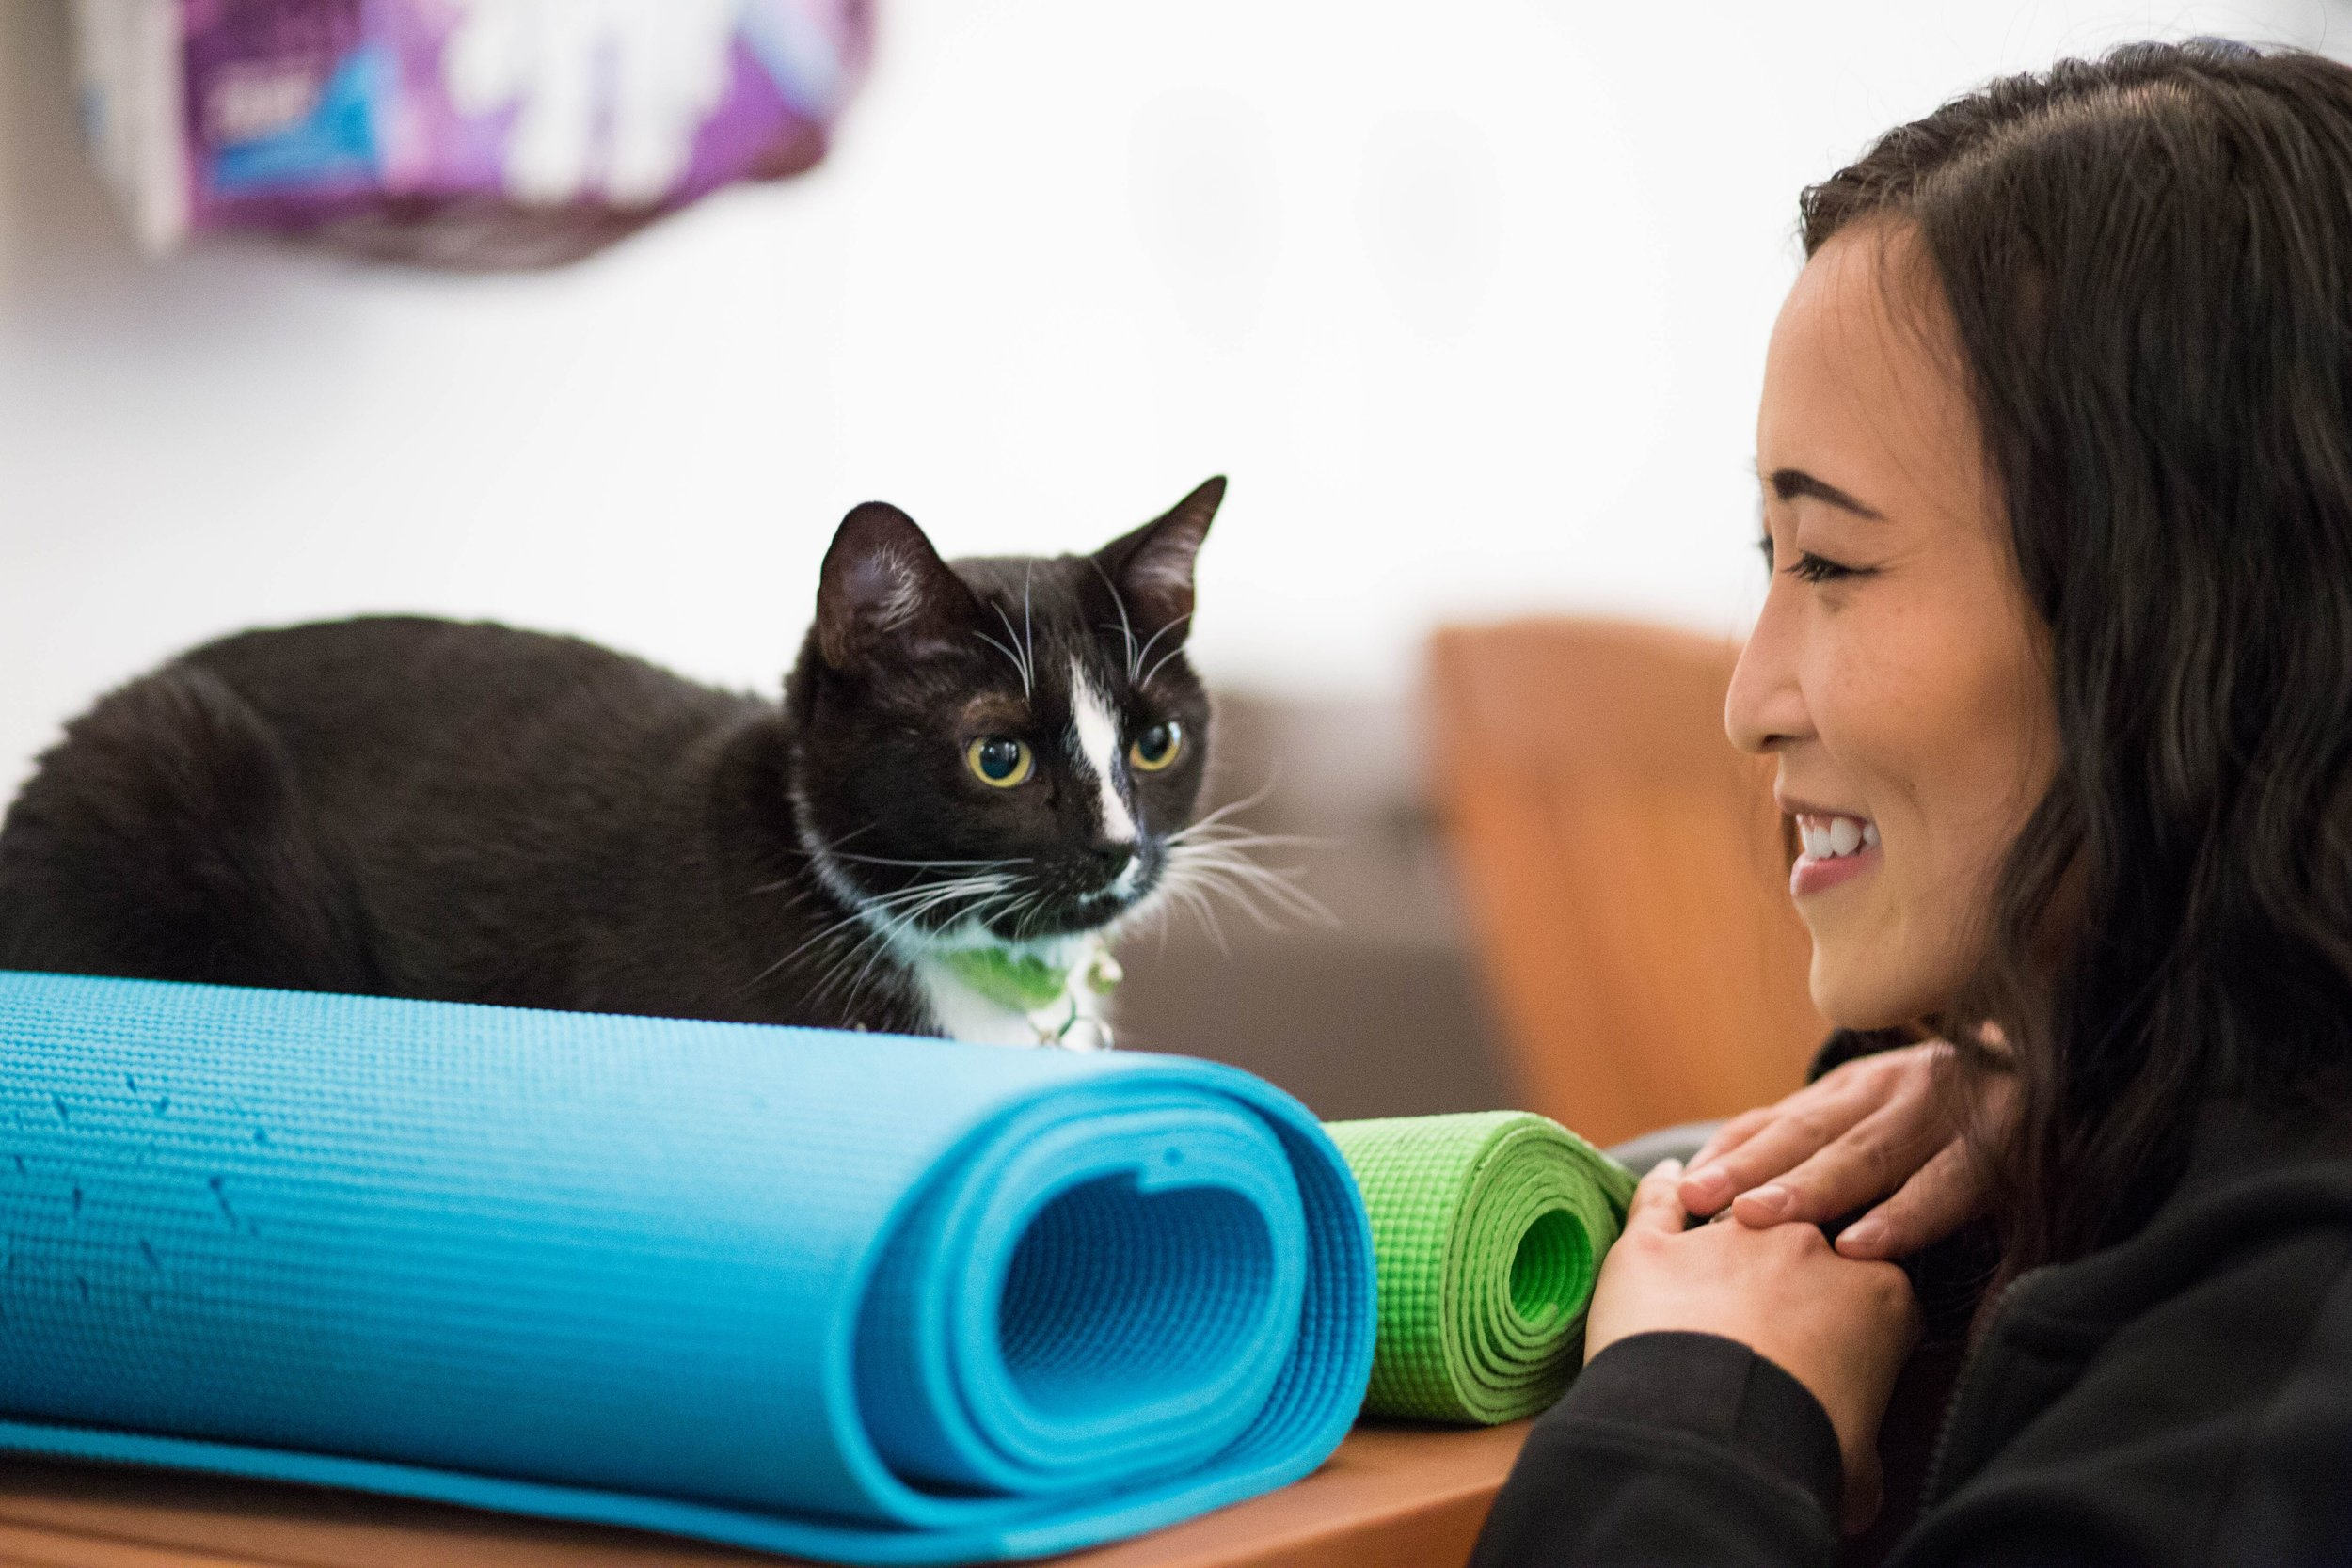 Yoga + Cats - Yoga + Cats  is a super fun yoga class where you can move through an all-levels vinyasa flow while sharing space with our café cats! Will you be the lucky person who gets stuck in downward dog while a kitty lays on your mat?For class availability and sign up, click here.